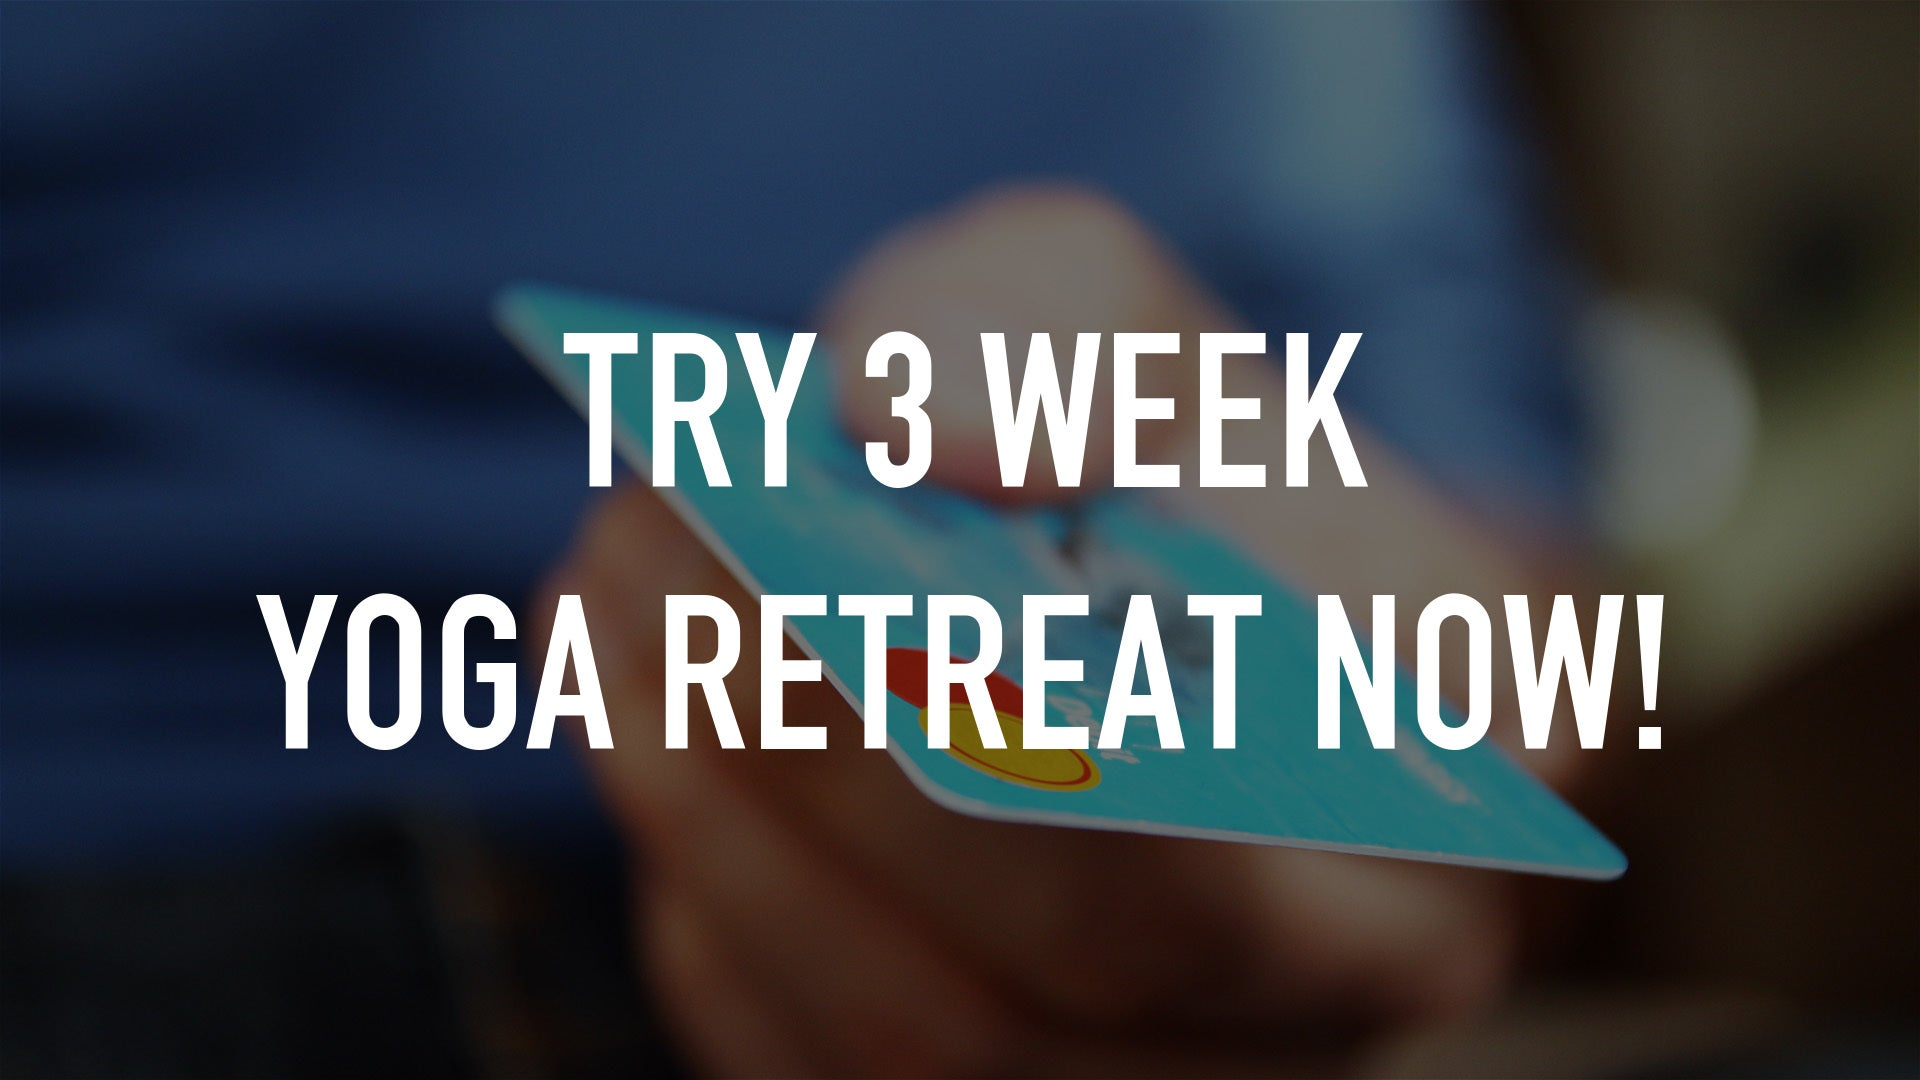 Try 3 Week Yoga Retreat Now!